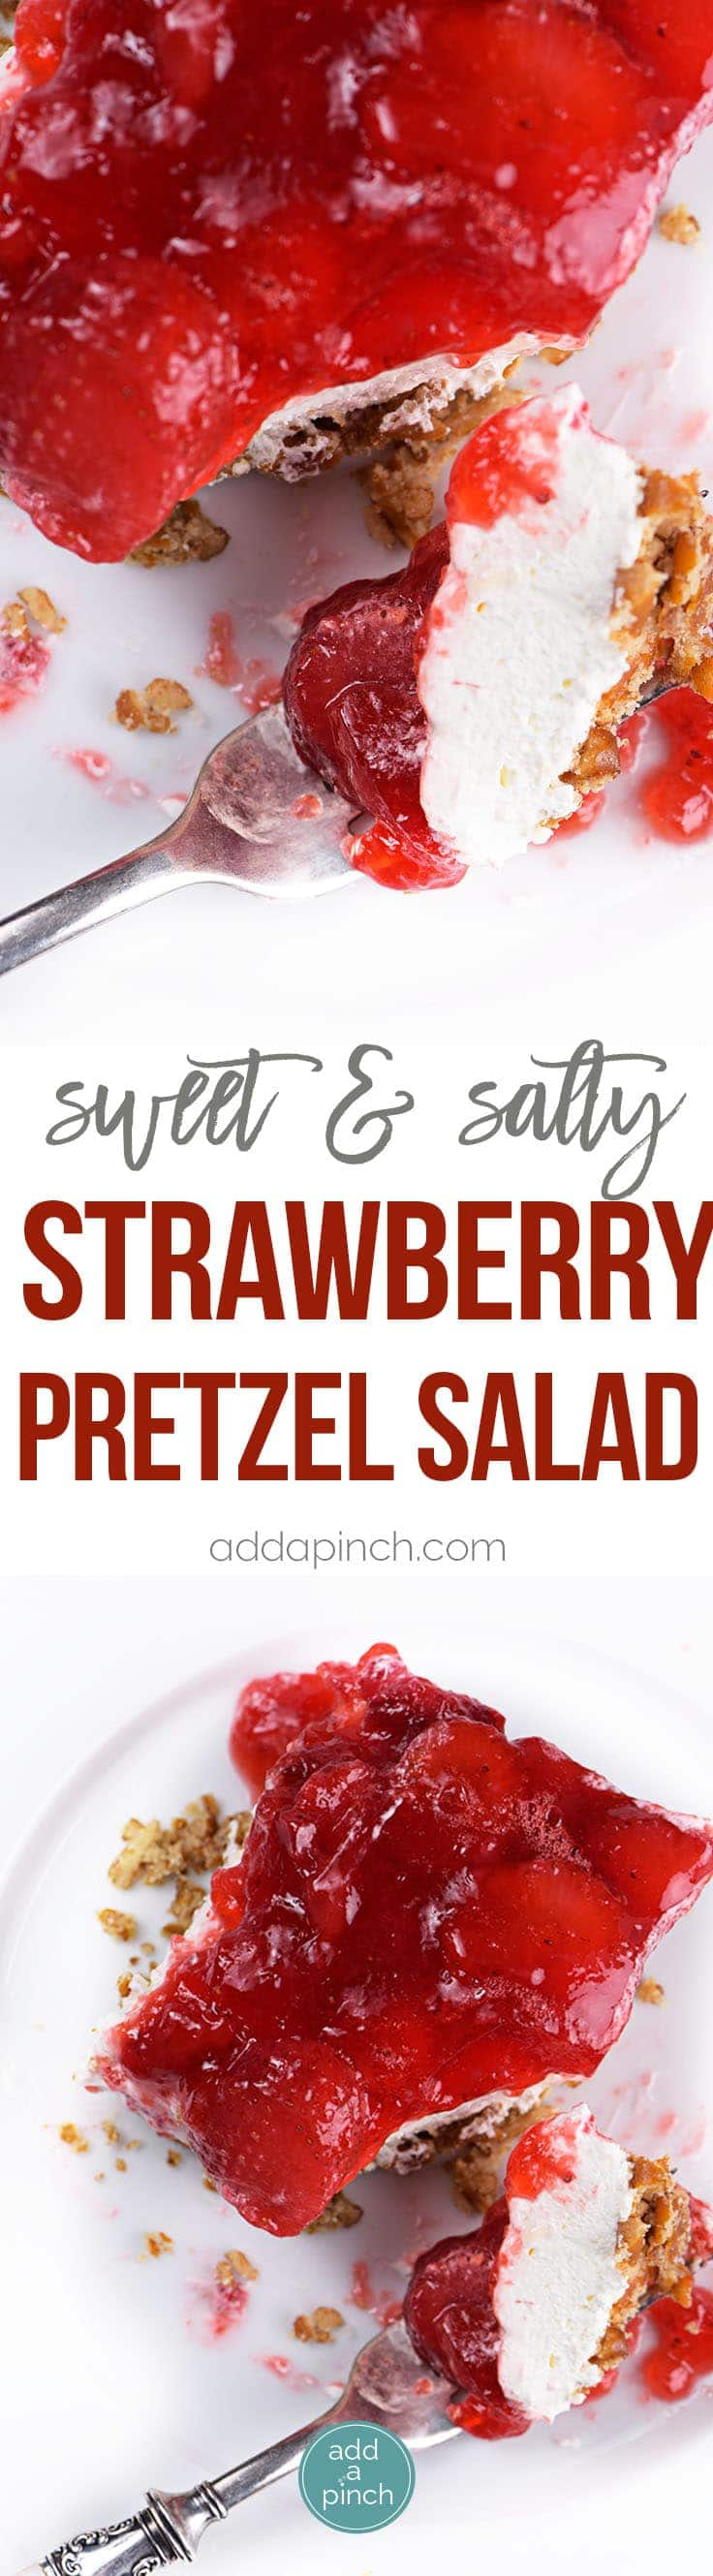 Strawberry Pretzel Salad Recipe - Strawberry pretzel salad is a classic and nostalgic recipe.  A creamy and fruity recipe made with strawberry gelatin, cream cheese, whipped topping and pretzels.  It's still a favorite.  // addapinch.com